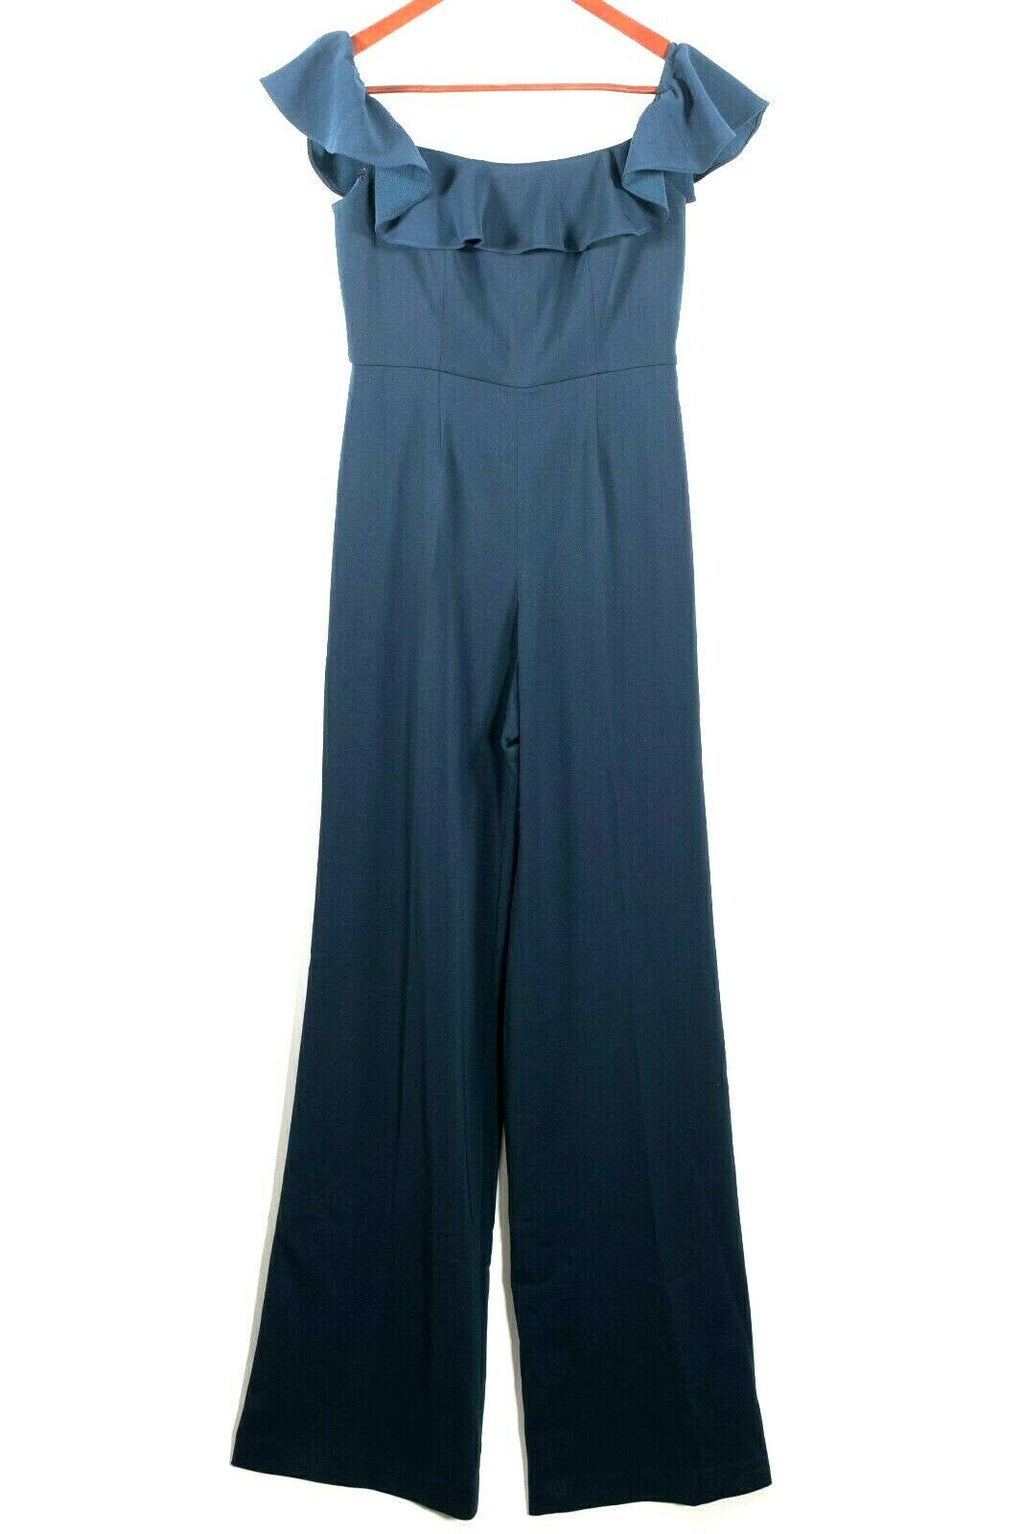 Jay Godfrey Womens Size 0 Navy Blue Jumpsuit Off Shoulder Ruffle Wide Leg $495